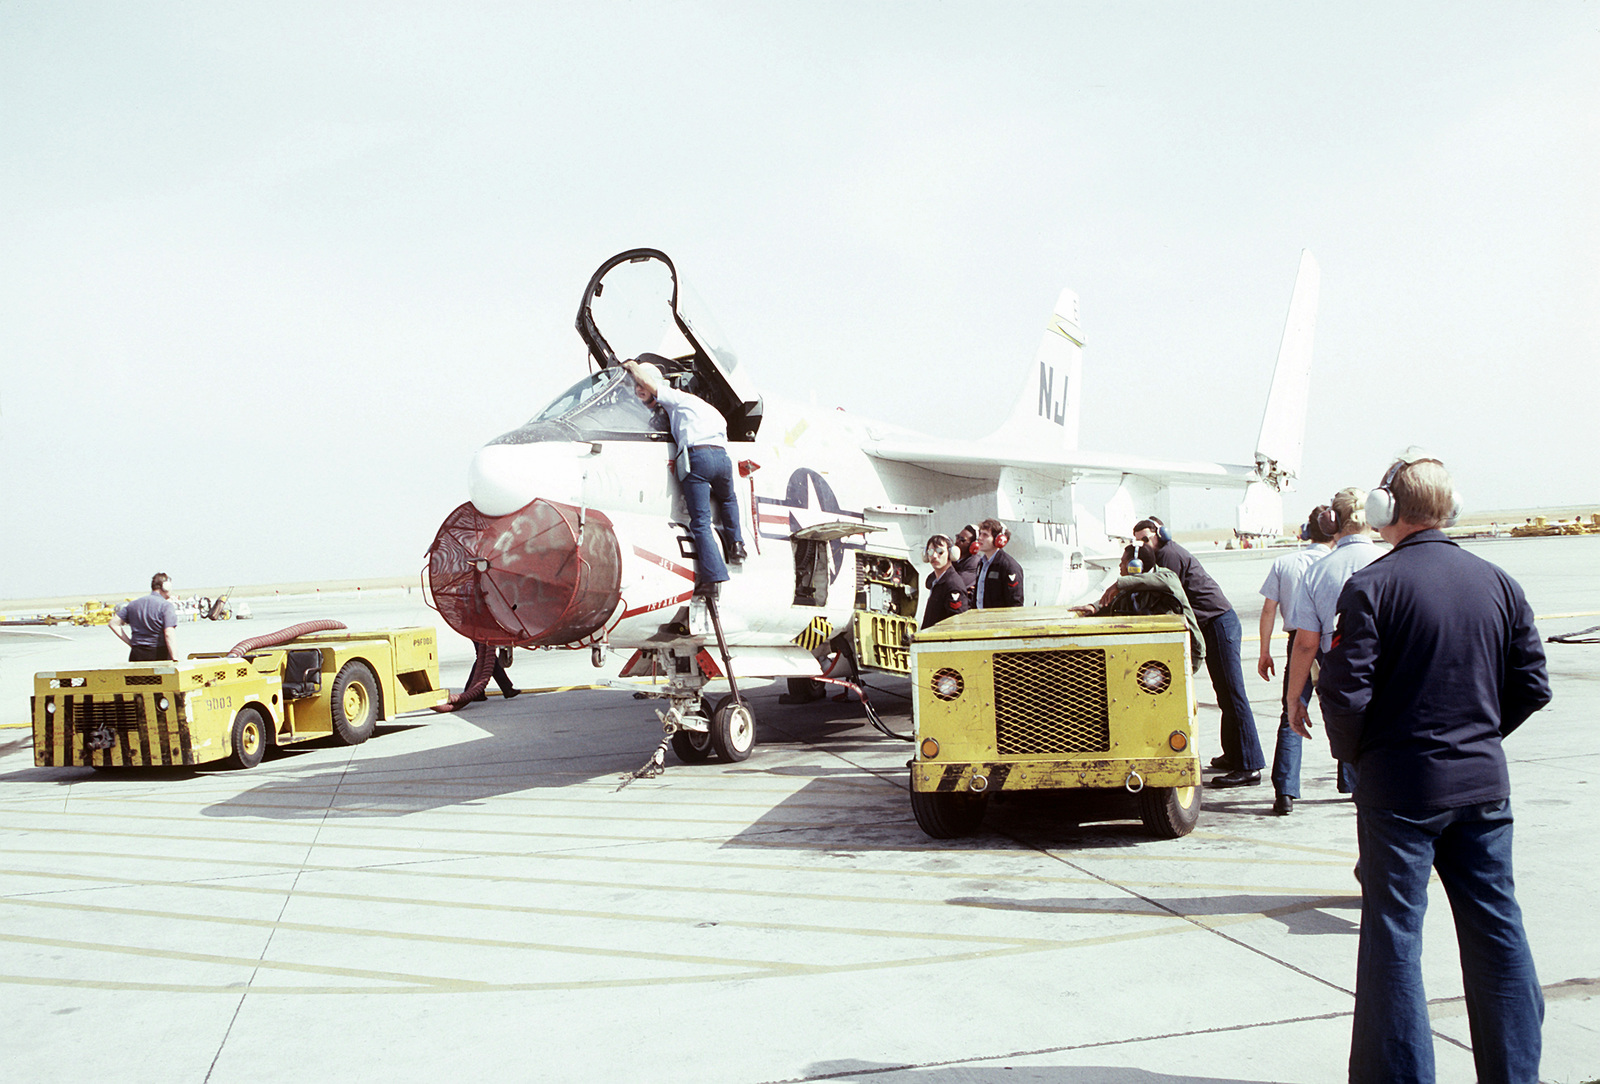 Crewmen from Light Attack Squadron 122 (VA-122) perform preflight maintenance on an A-7 Corsair II aircraft